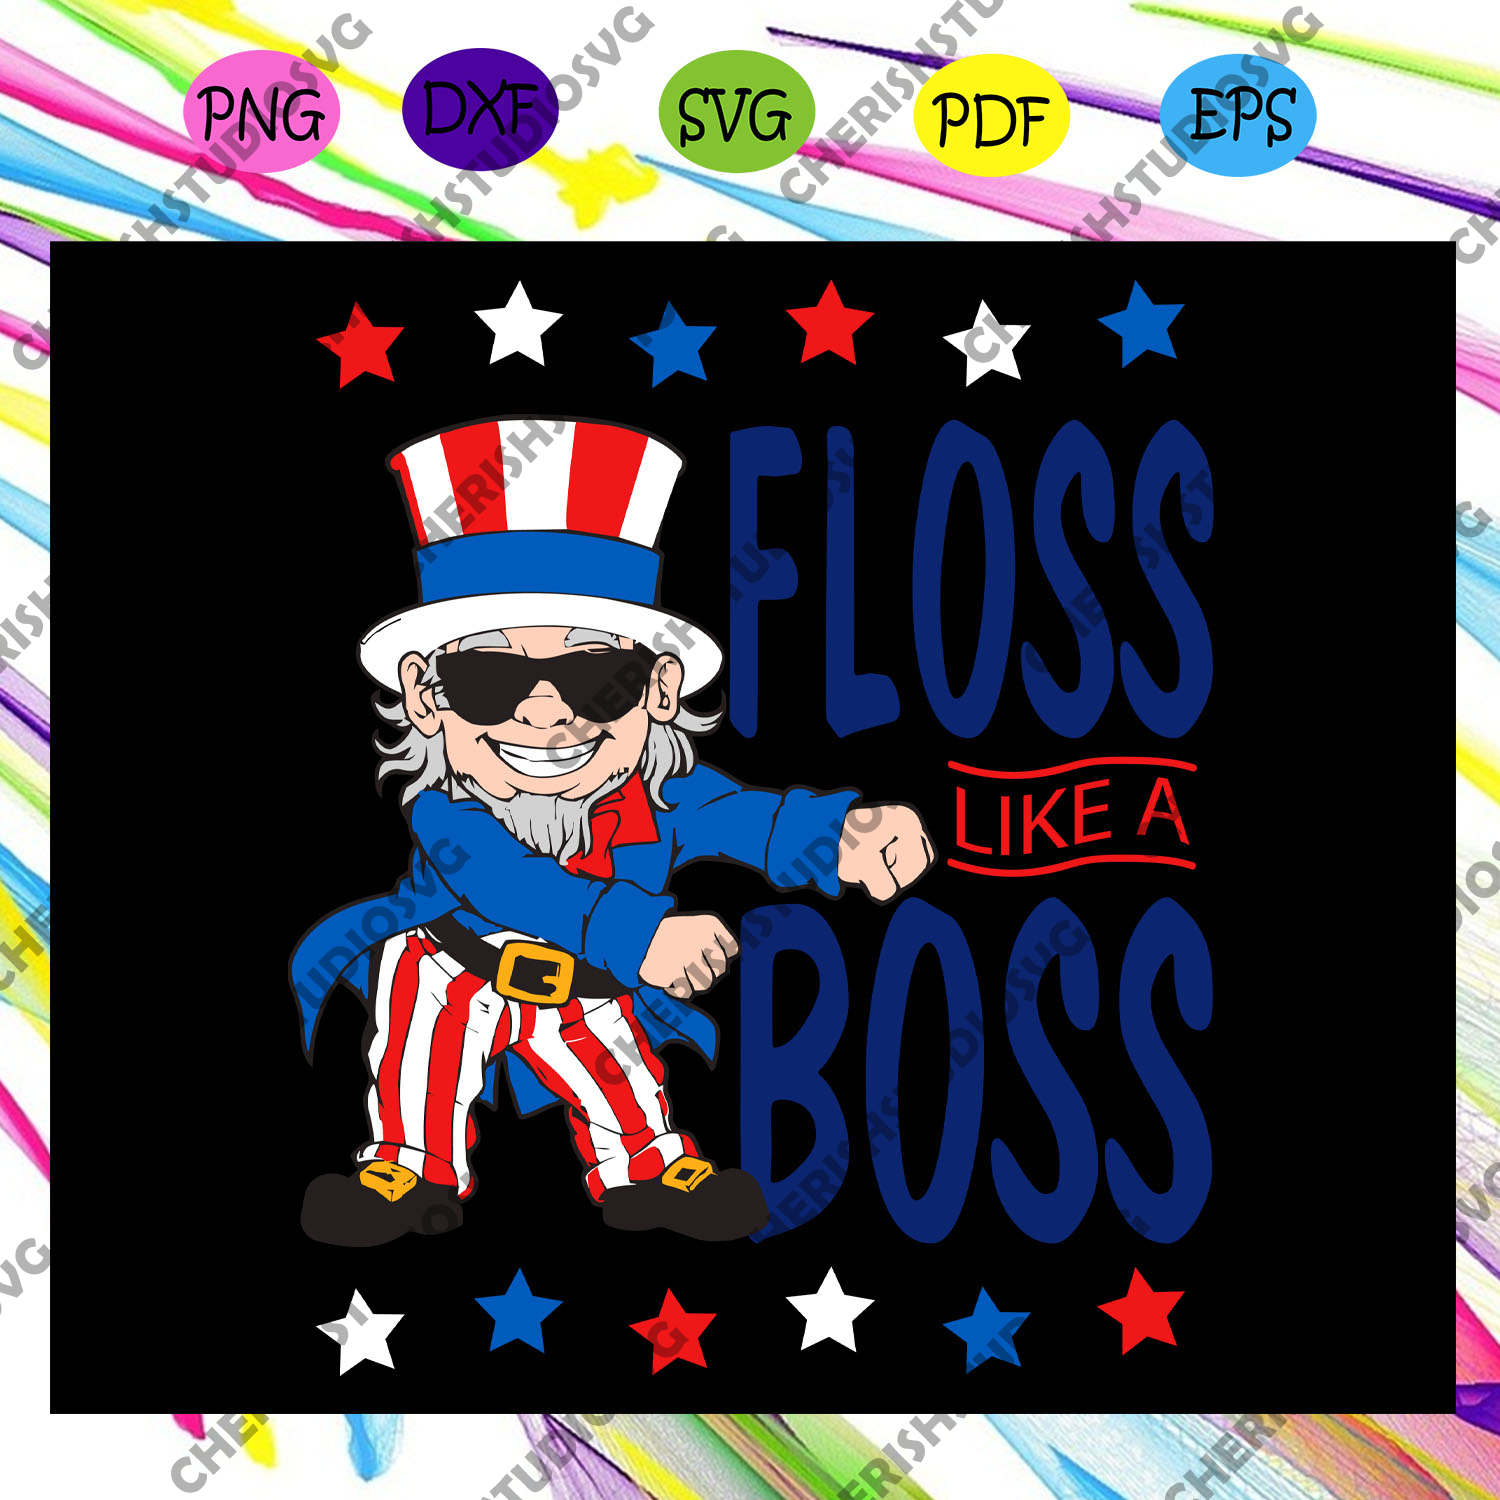 Floss like a boss, independence day svg,4th of july,funny 4th of july,america flag,4th july gift,independence gift,america flag For Silhouette, Files For Cricut, SVG, DXF, EPS, PNG Instant Download